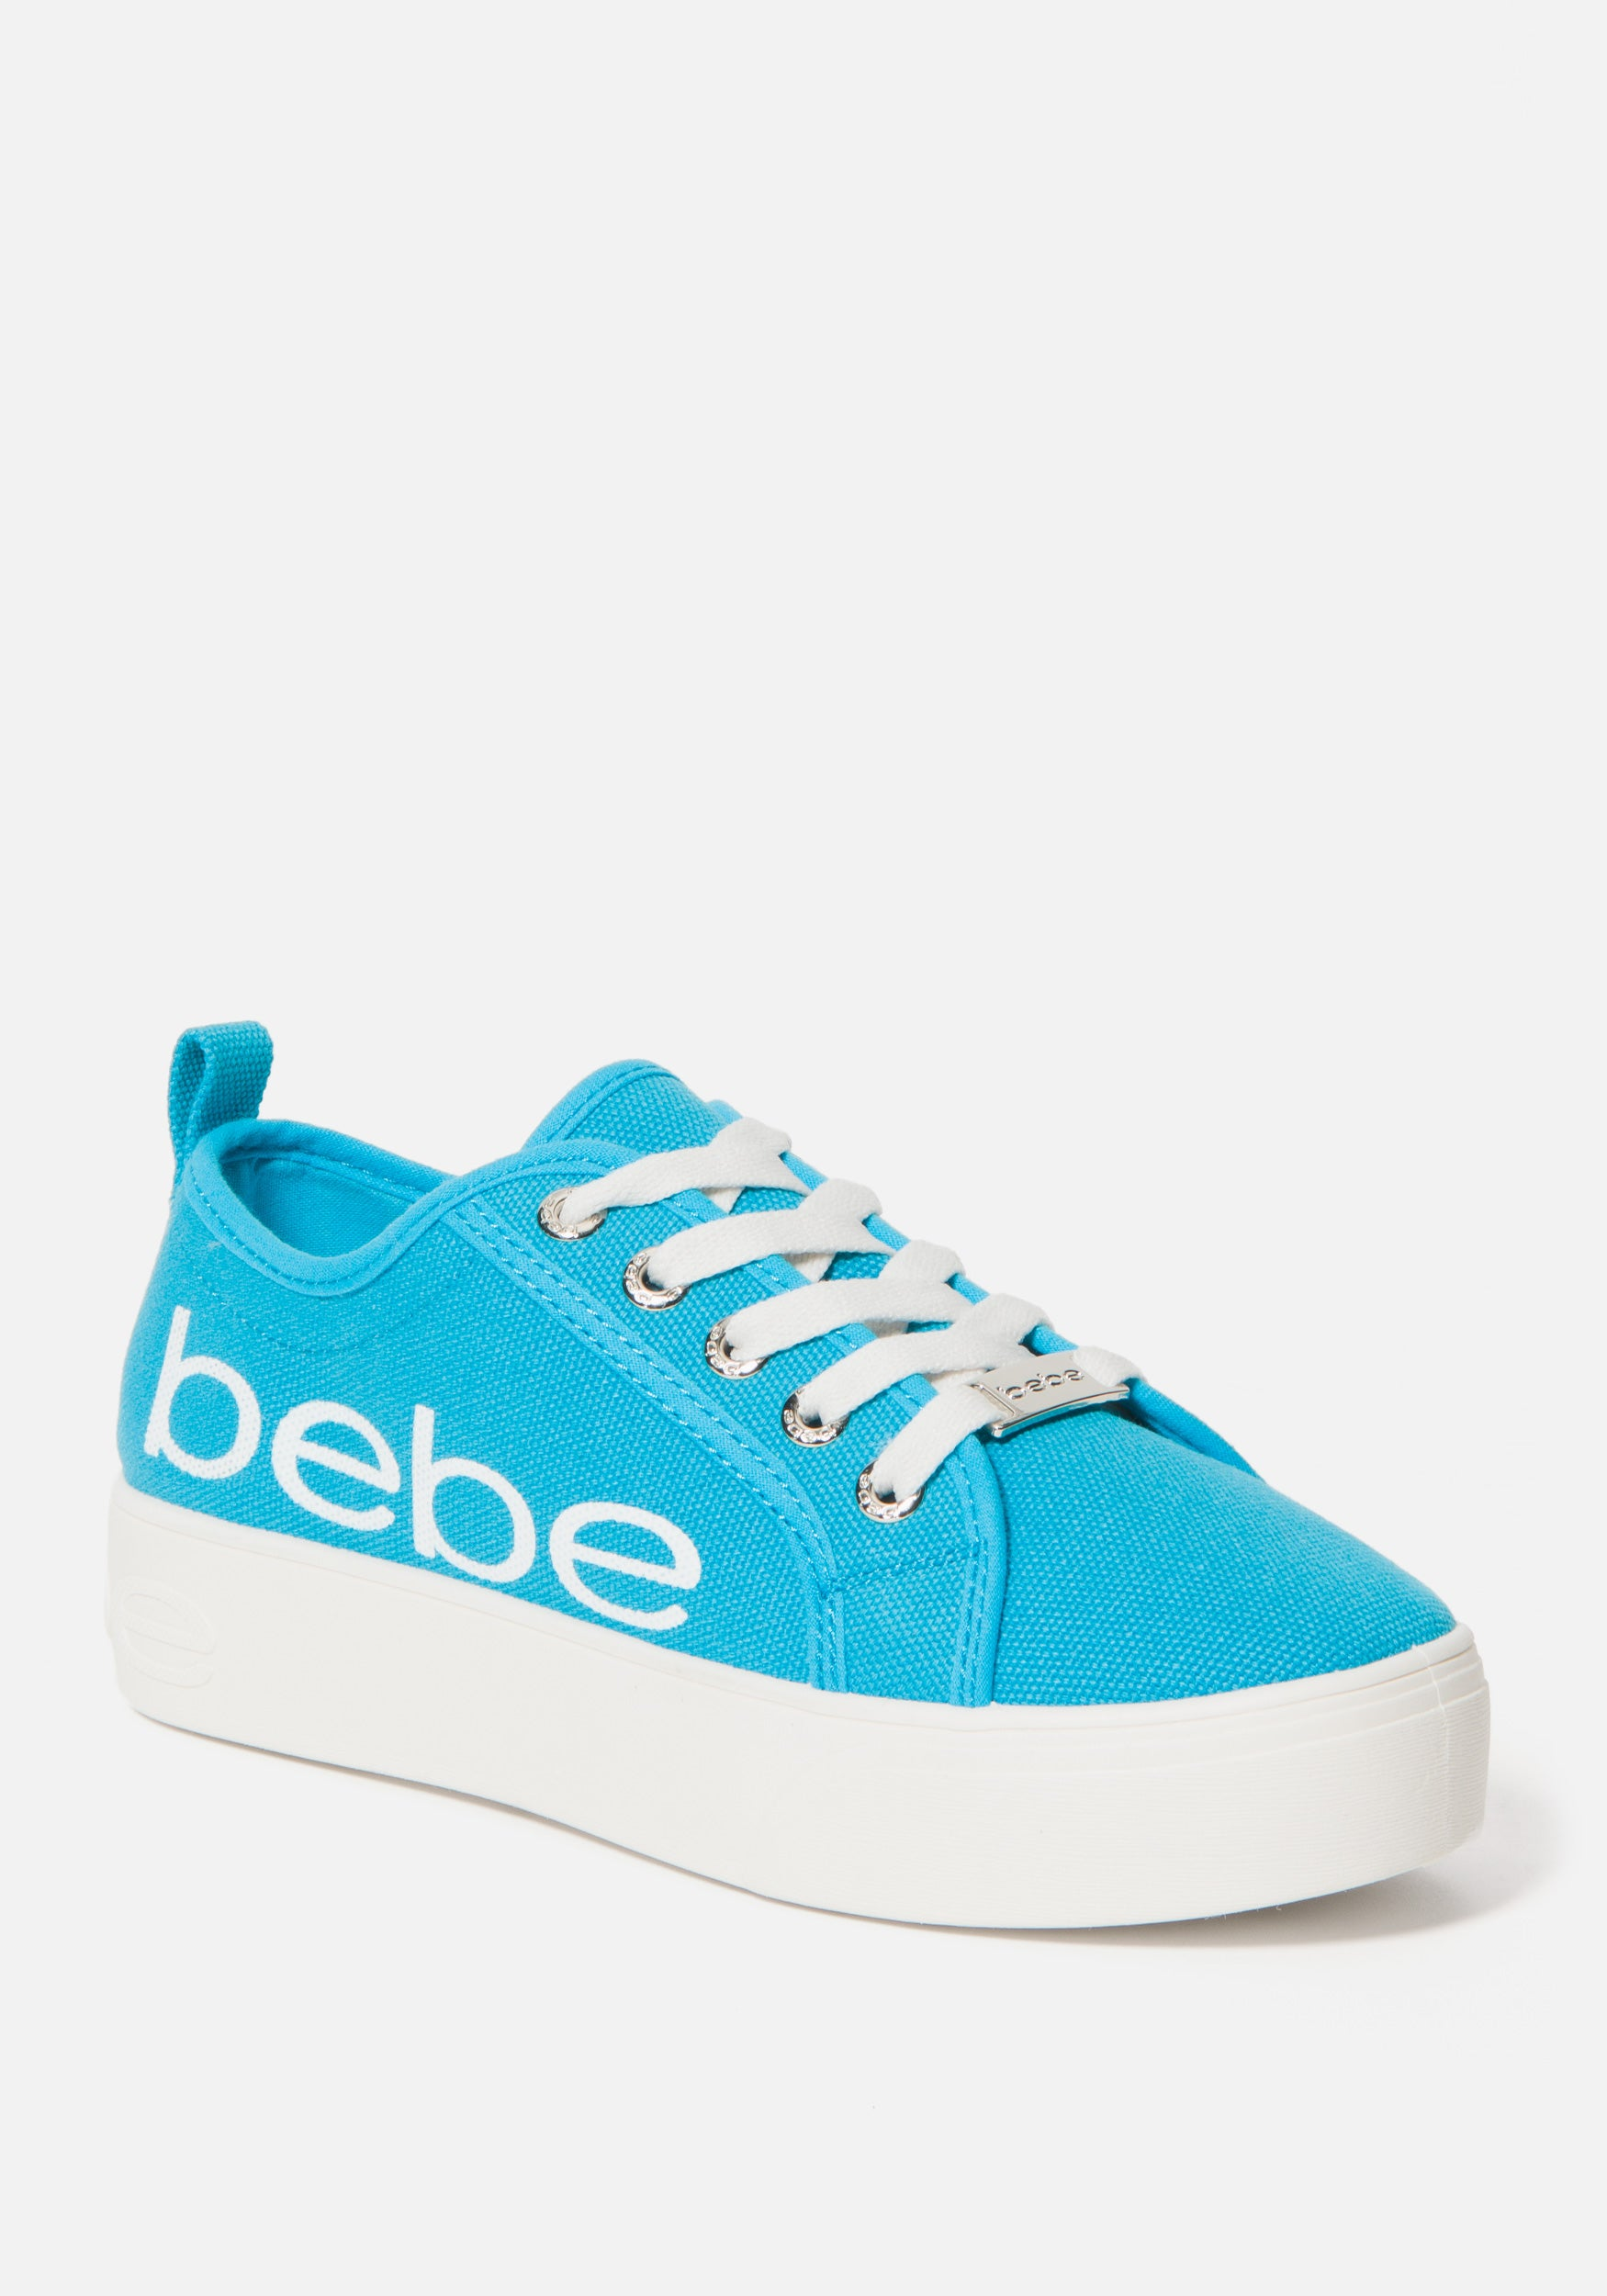 Bebe Women's Destini Platform Sneakers, Size 6 in AQUA Synthetic